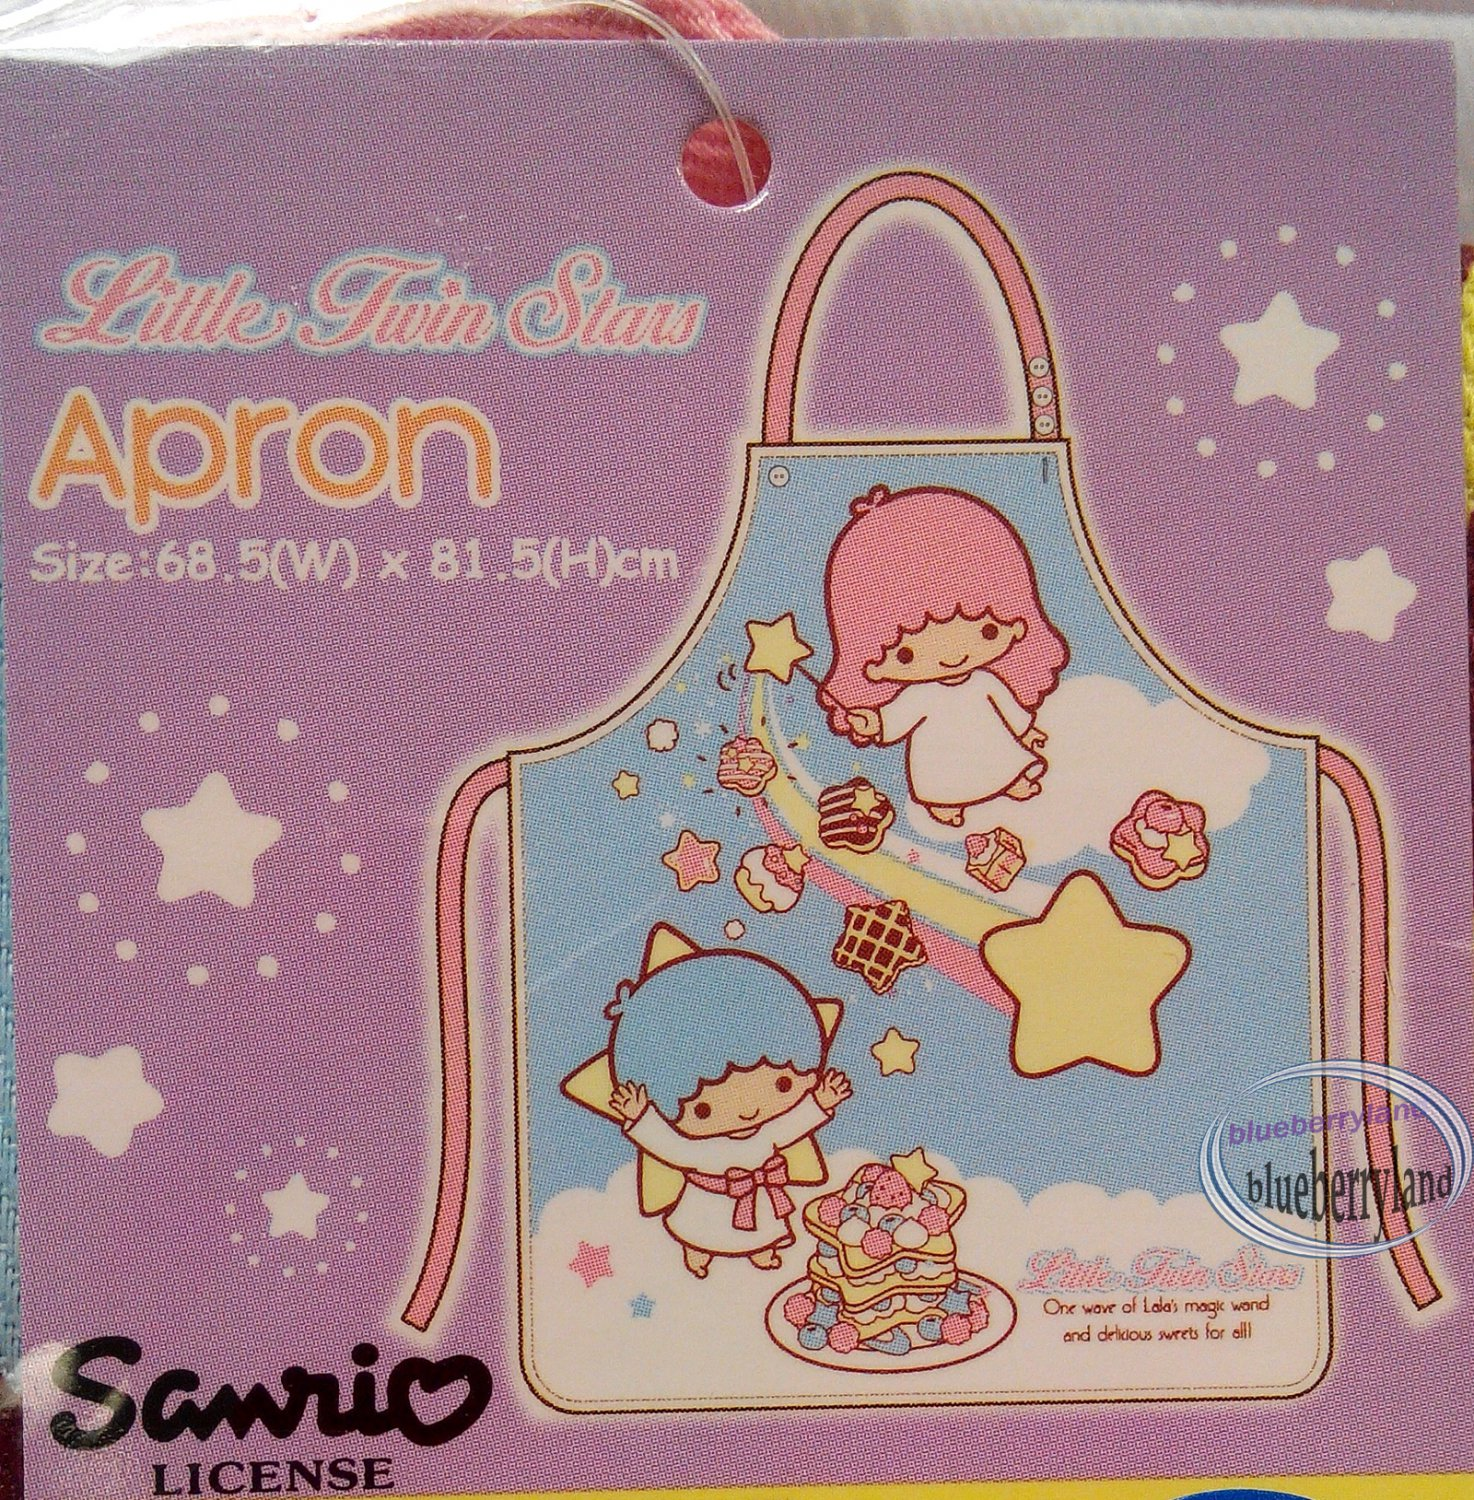 Sanrio Little Twin Stars Kitchen Apron 68.5 x 81.5cm kitchen cooking baking